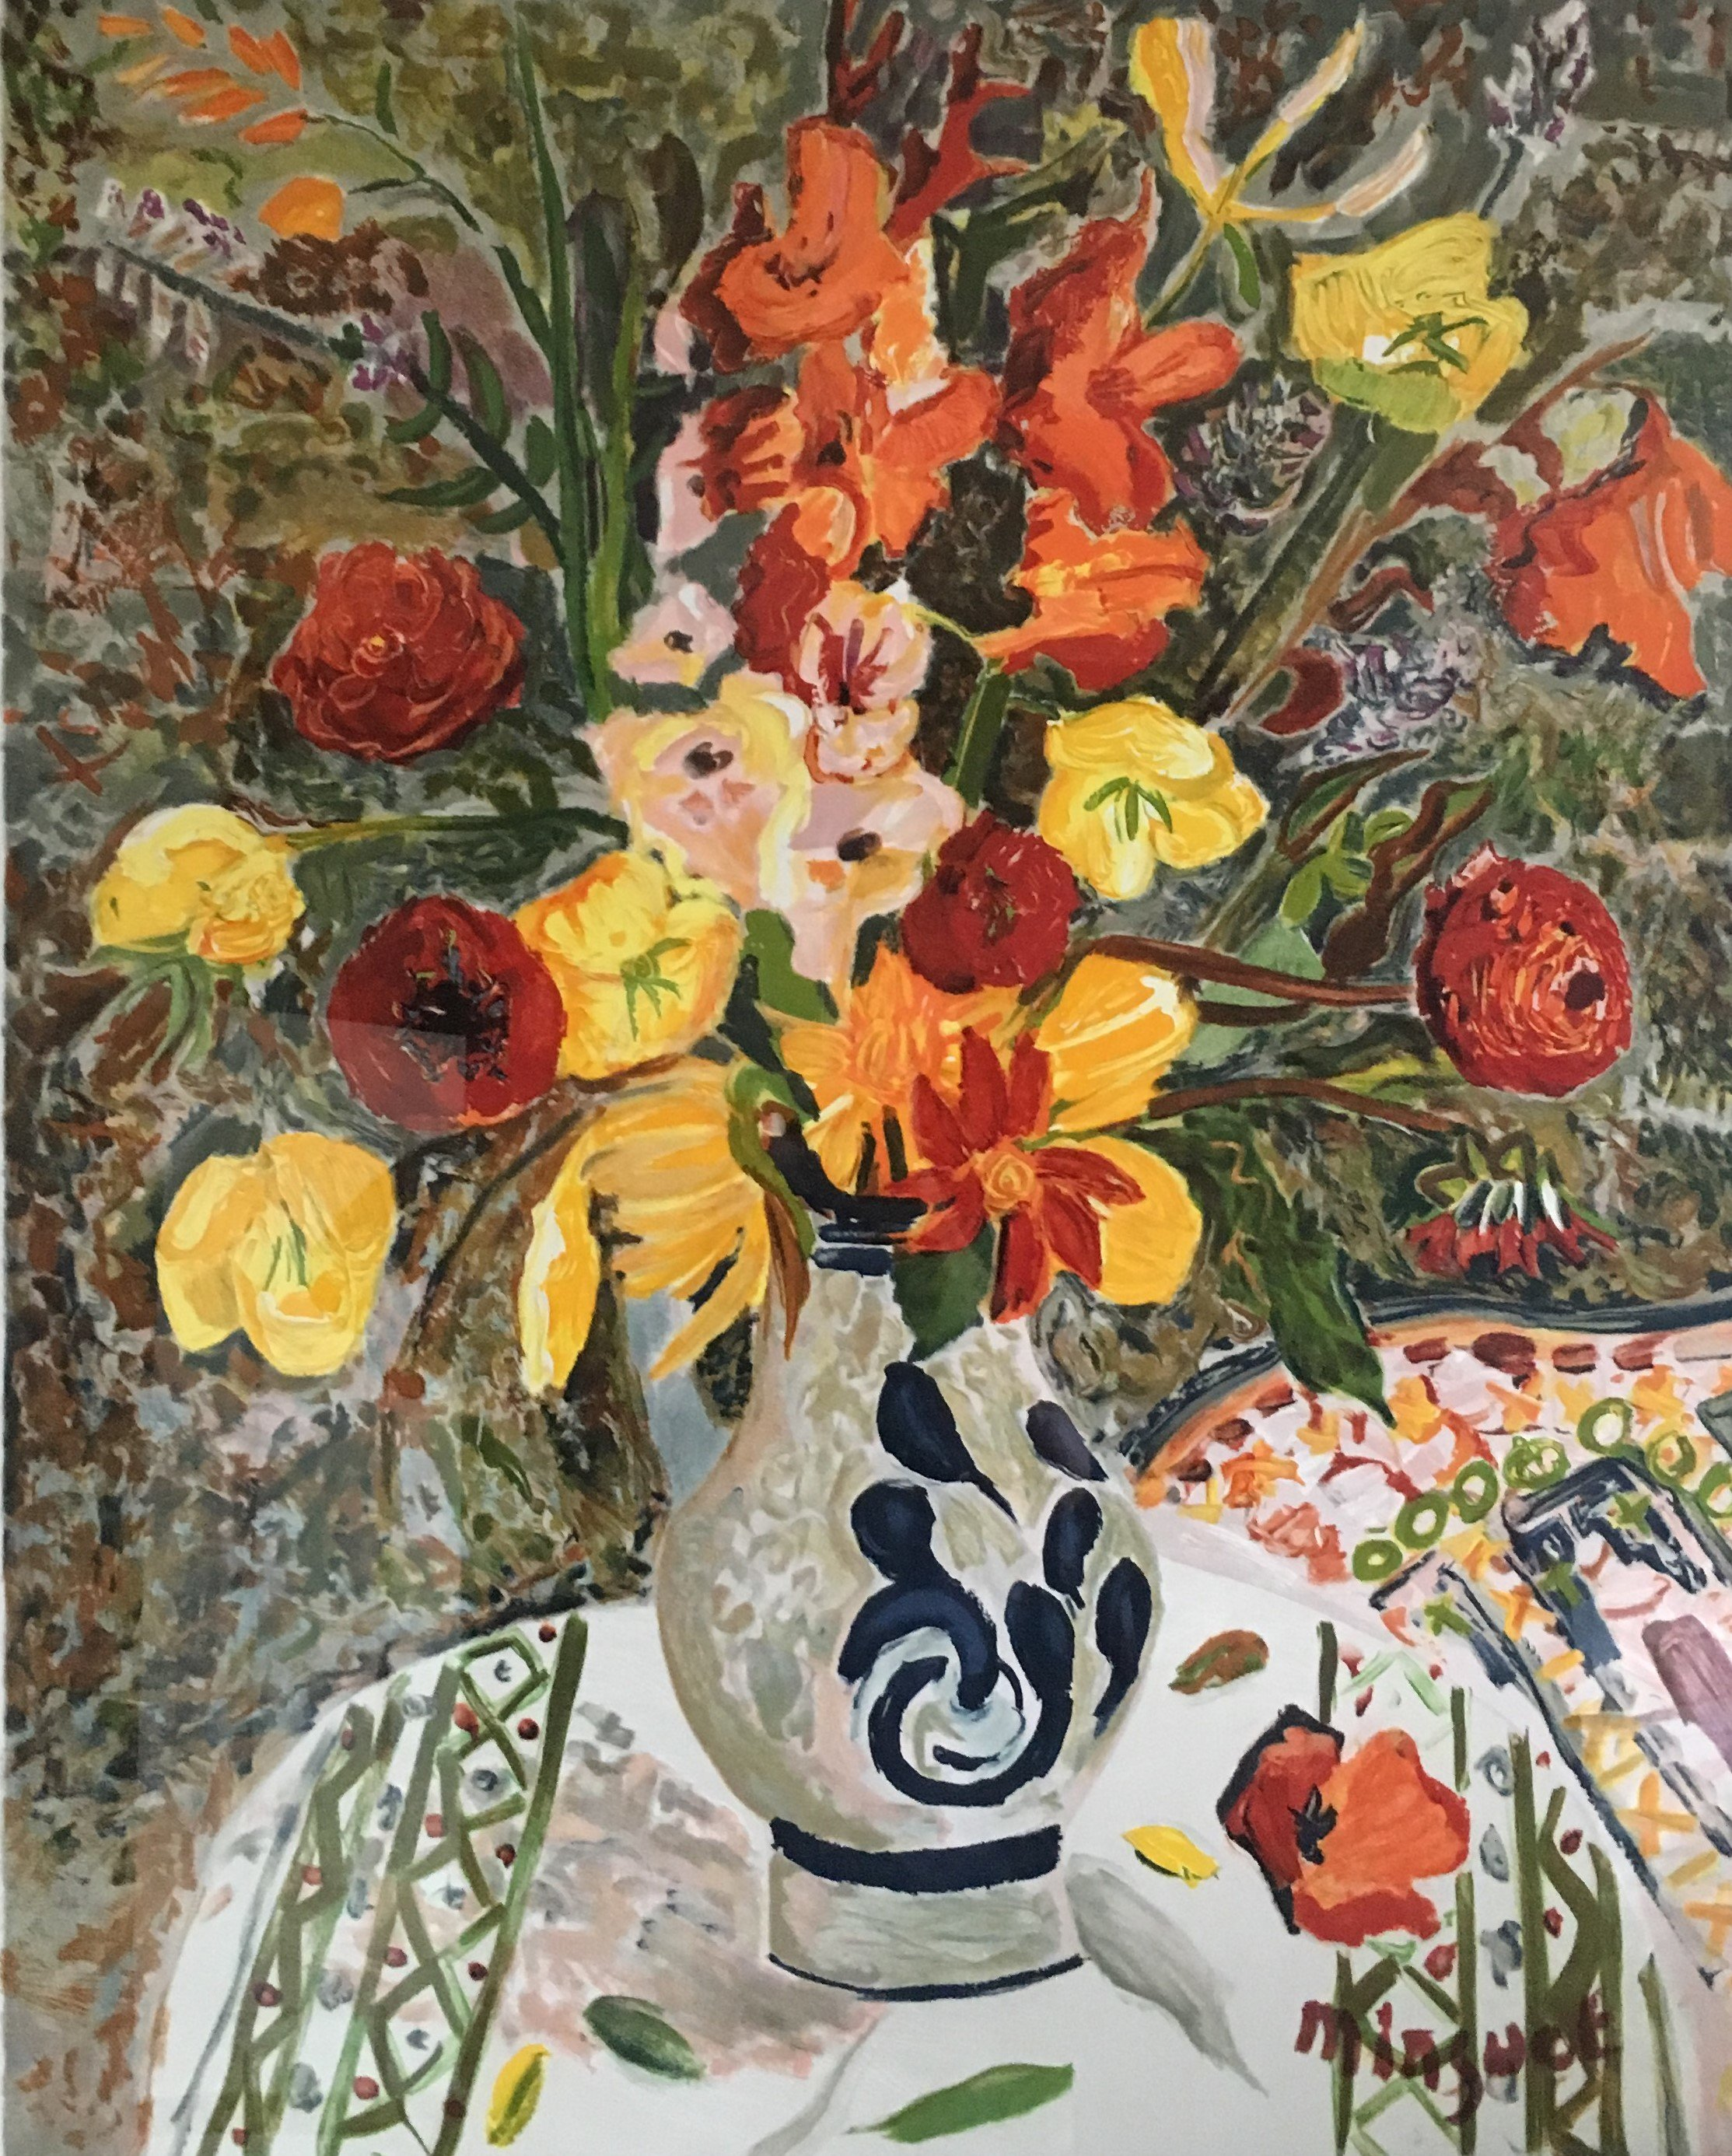 Gladiolas, California Poppies and Marigolds